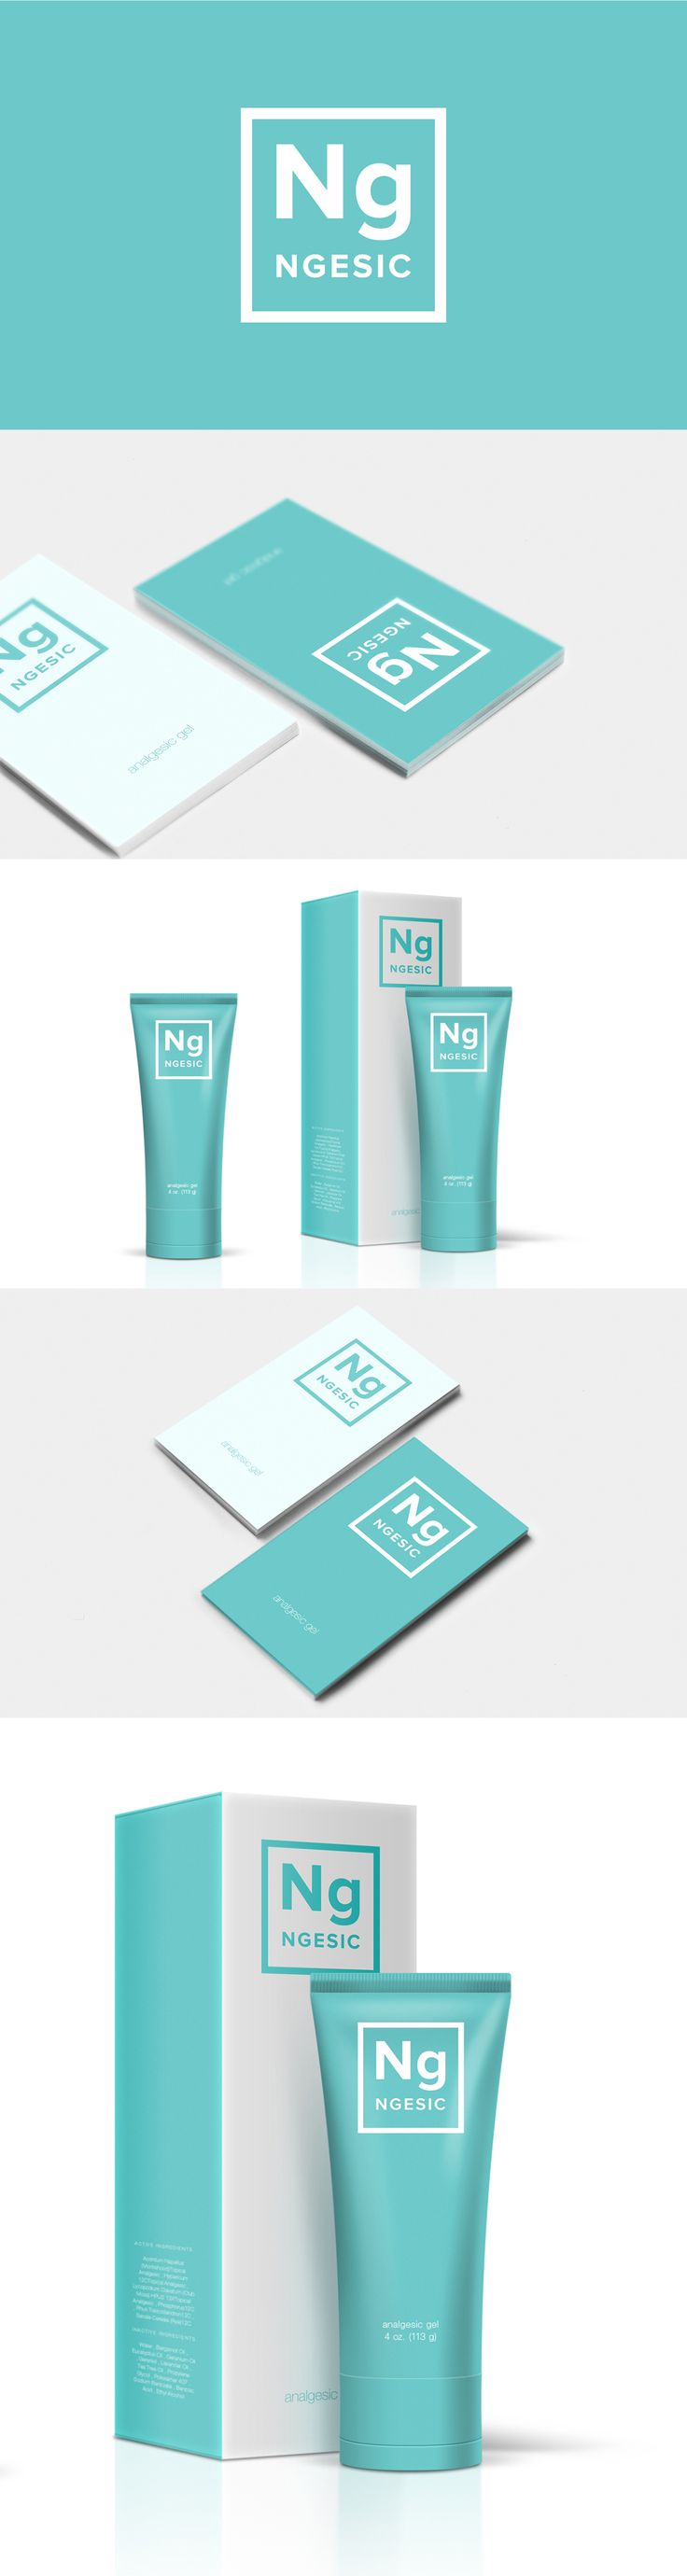 zhishi on Behance The logo design, identity and packaging design for new analgesic pharmaceutical product